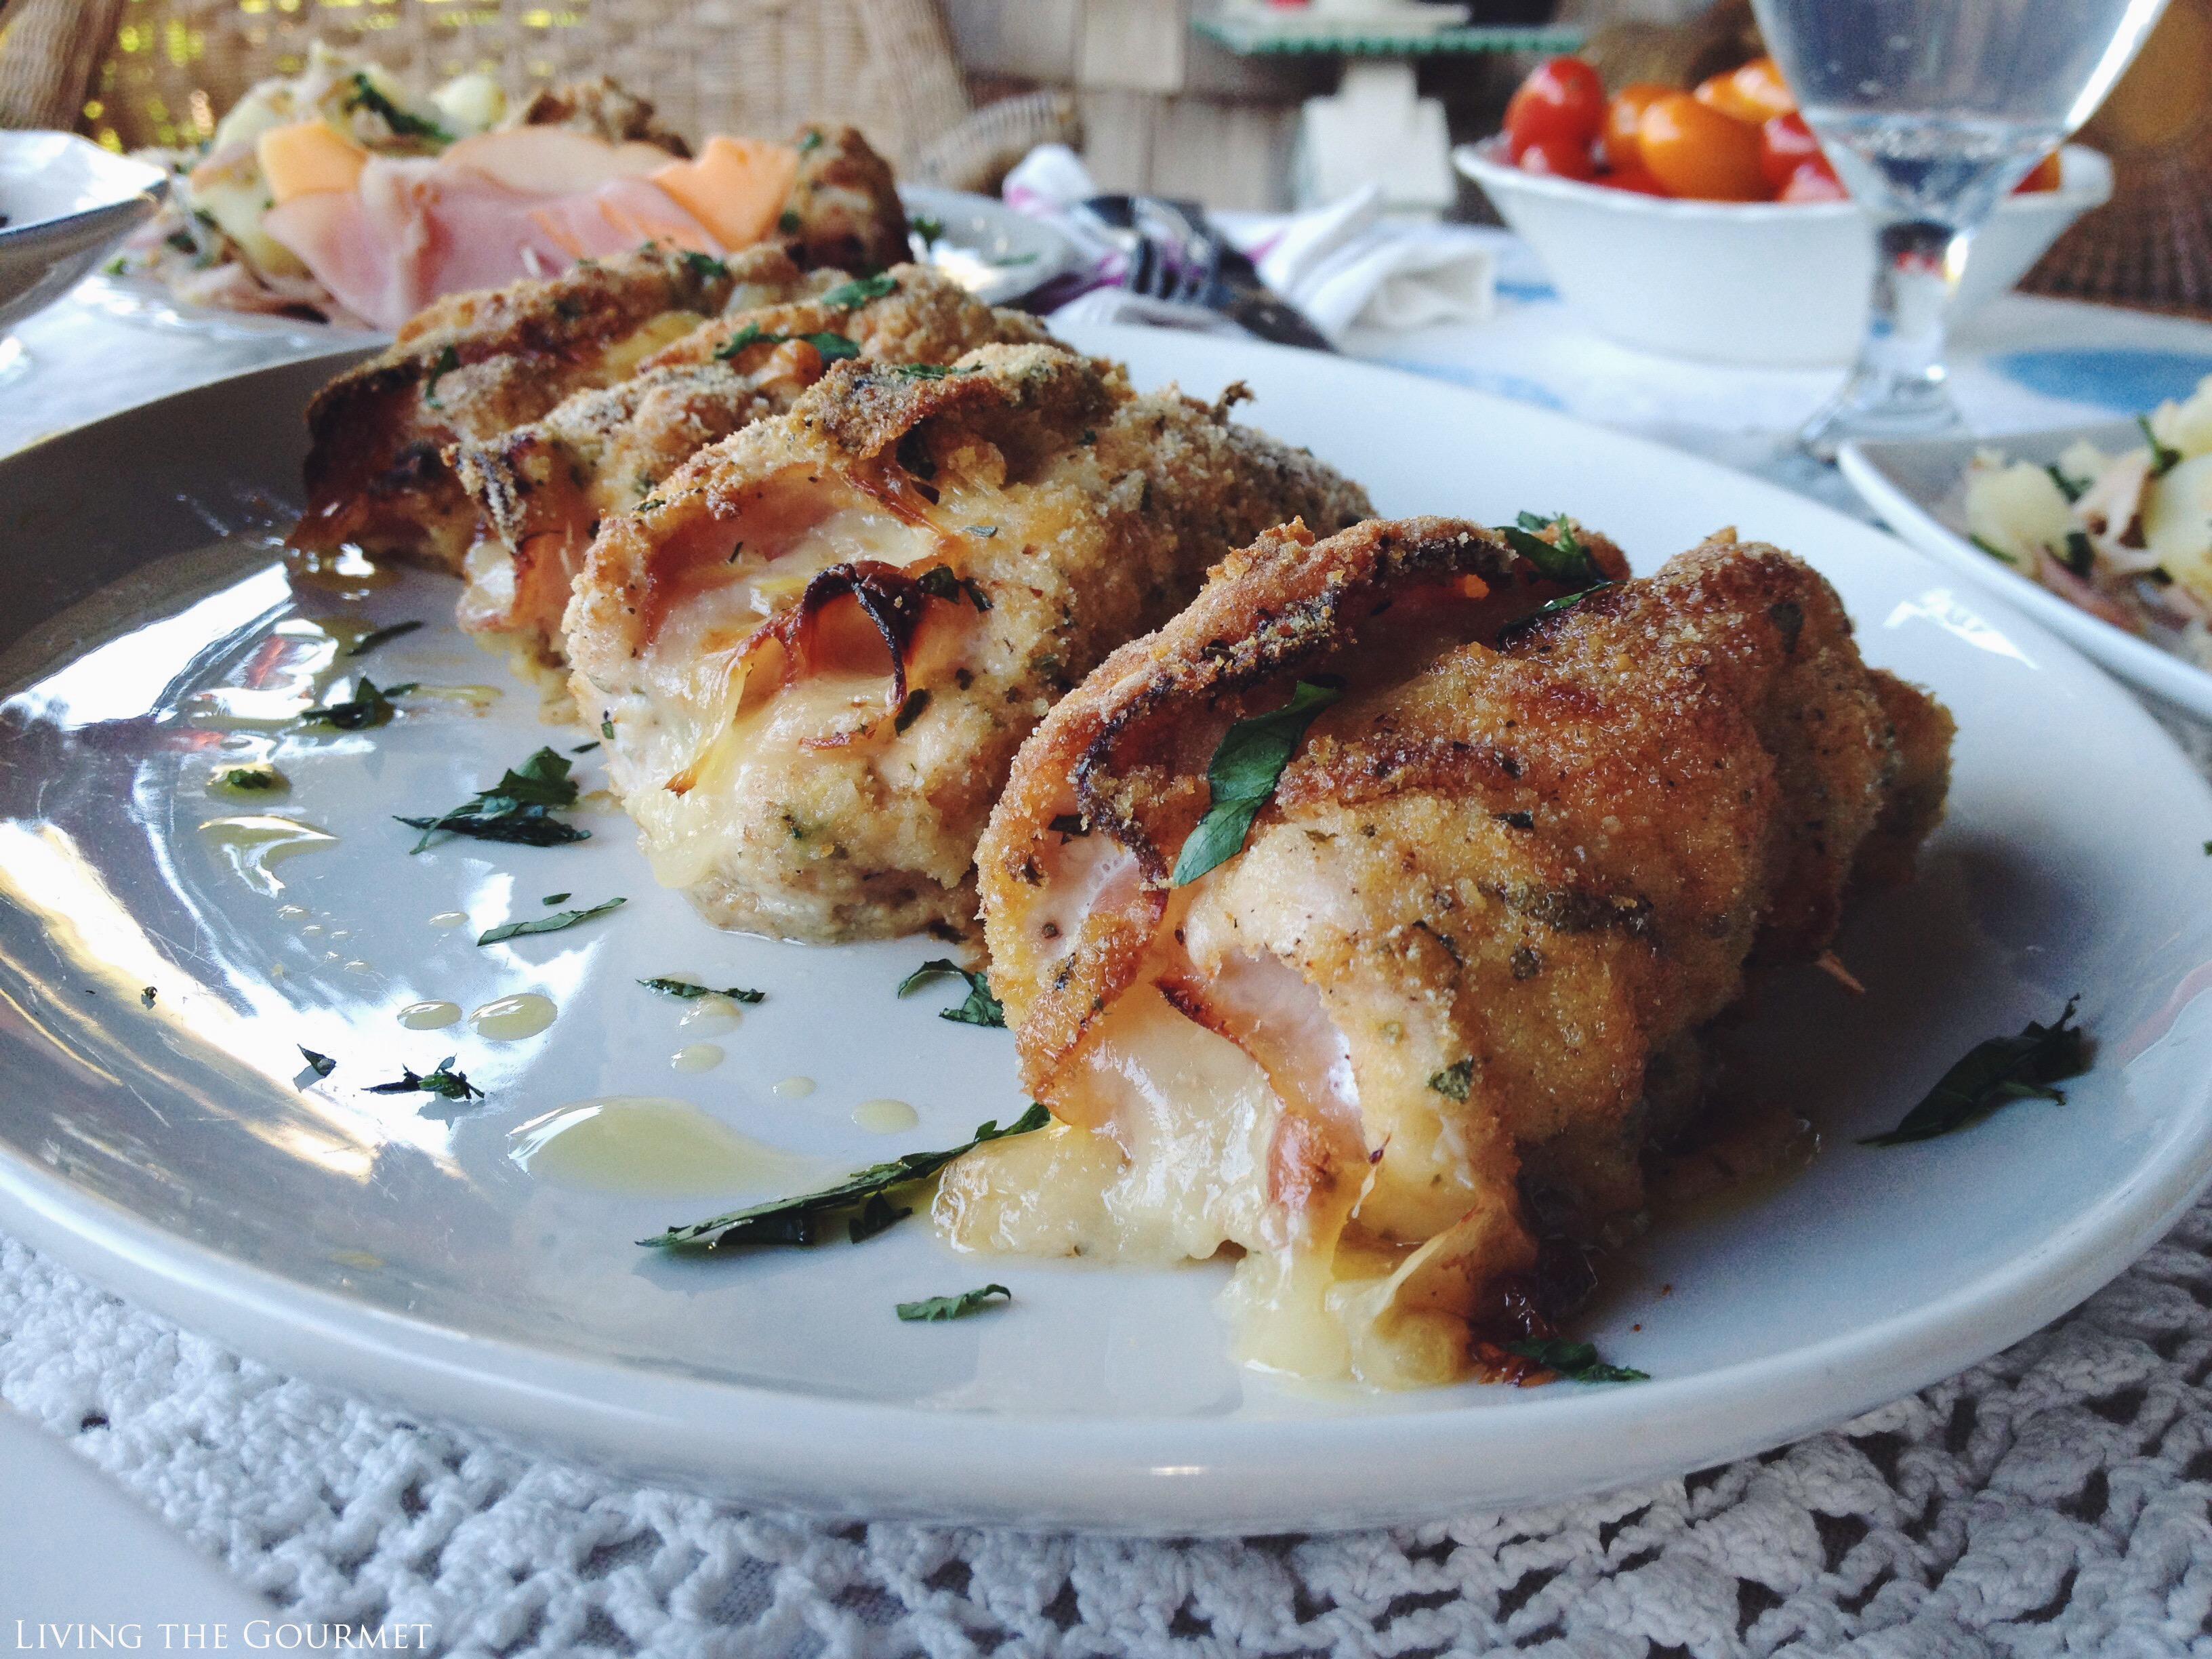 Living the Gourmet: Chicken Cordon Bleu | #BHSmokeHouseRules